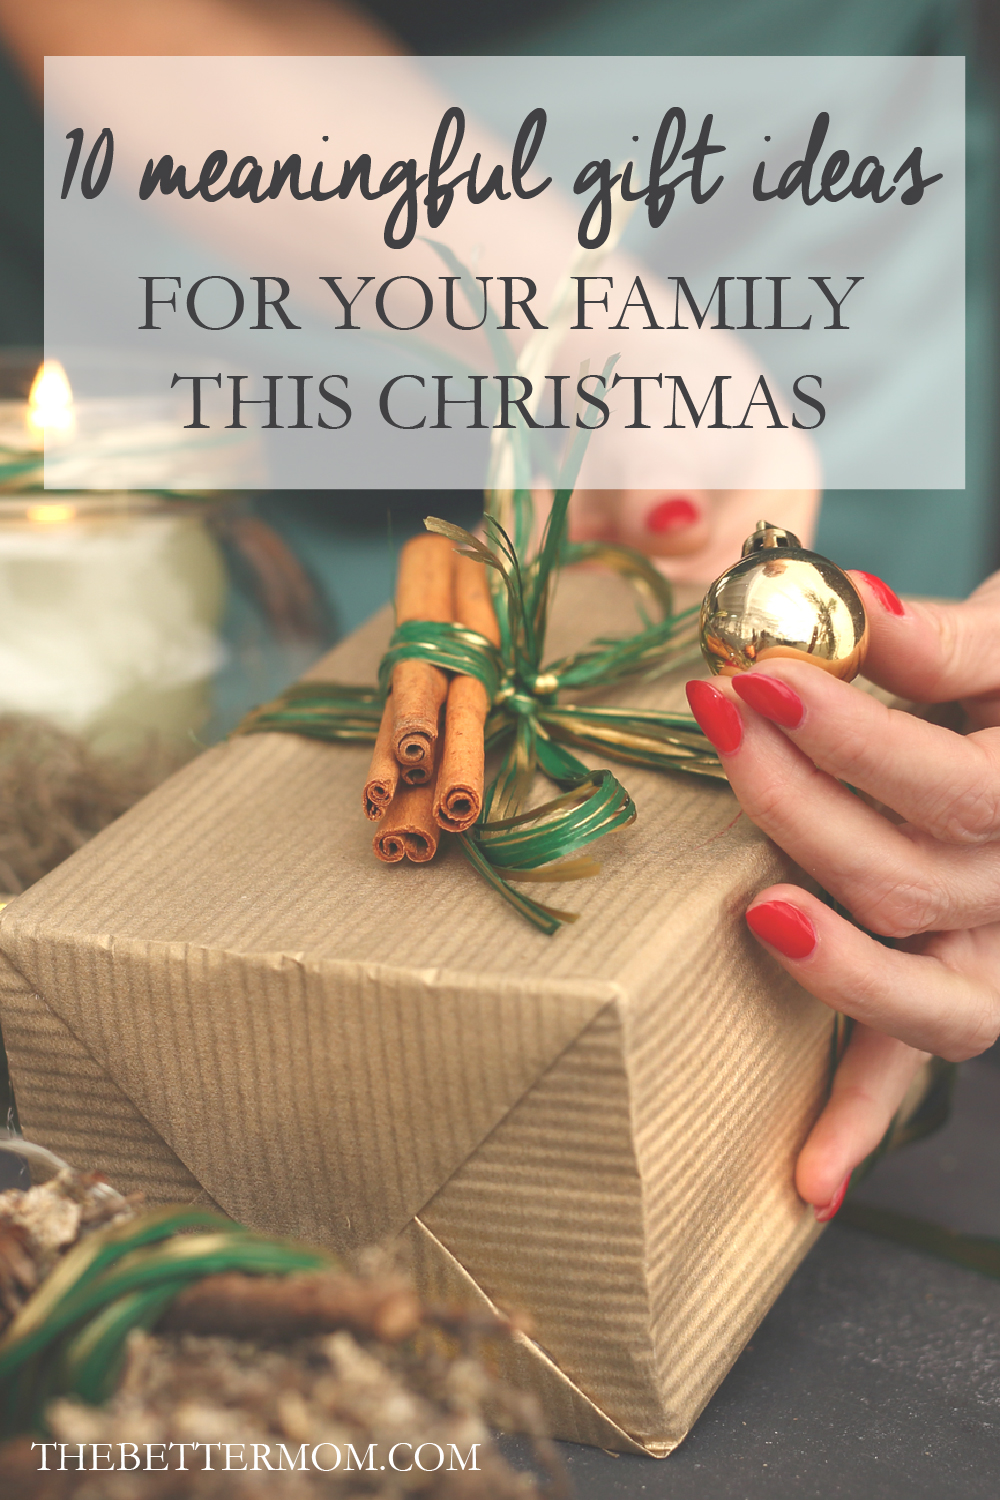 Christmas time is right around the corner. Can you believe it?! With all the hustle and bustle this season brings, I am always on the hunt for meaningful gifts to give my children and family. Here are some of my favorites!